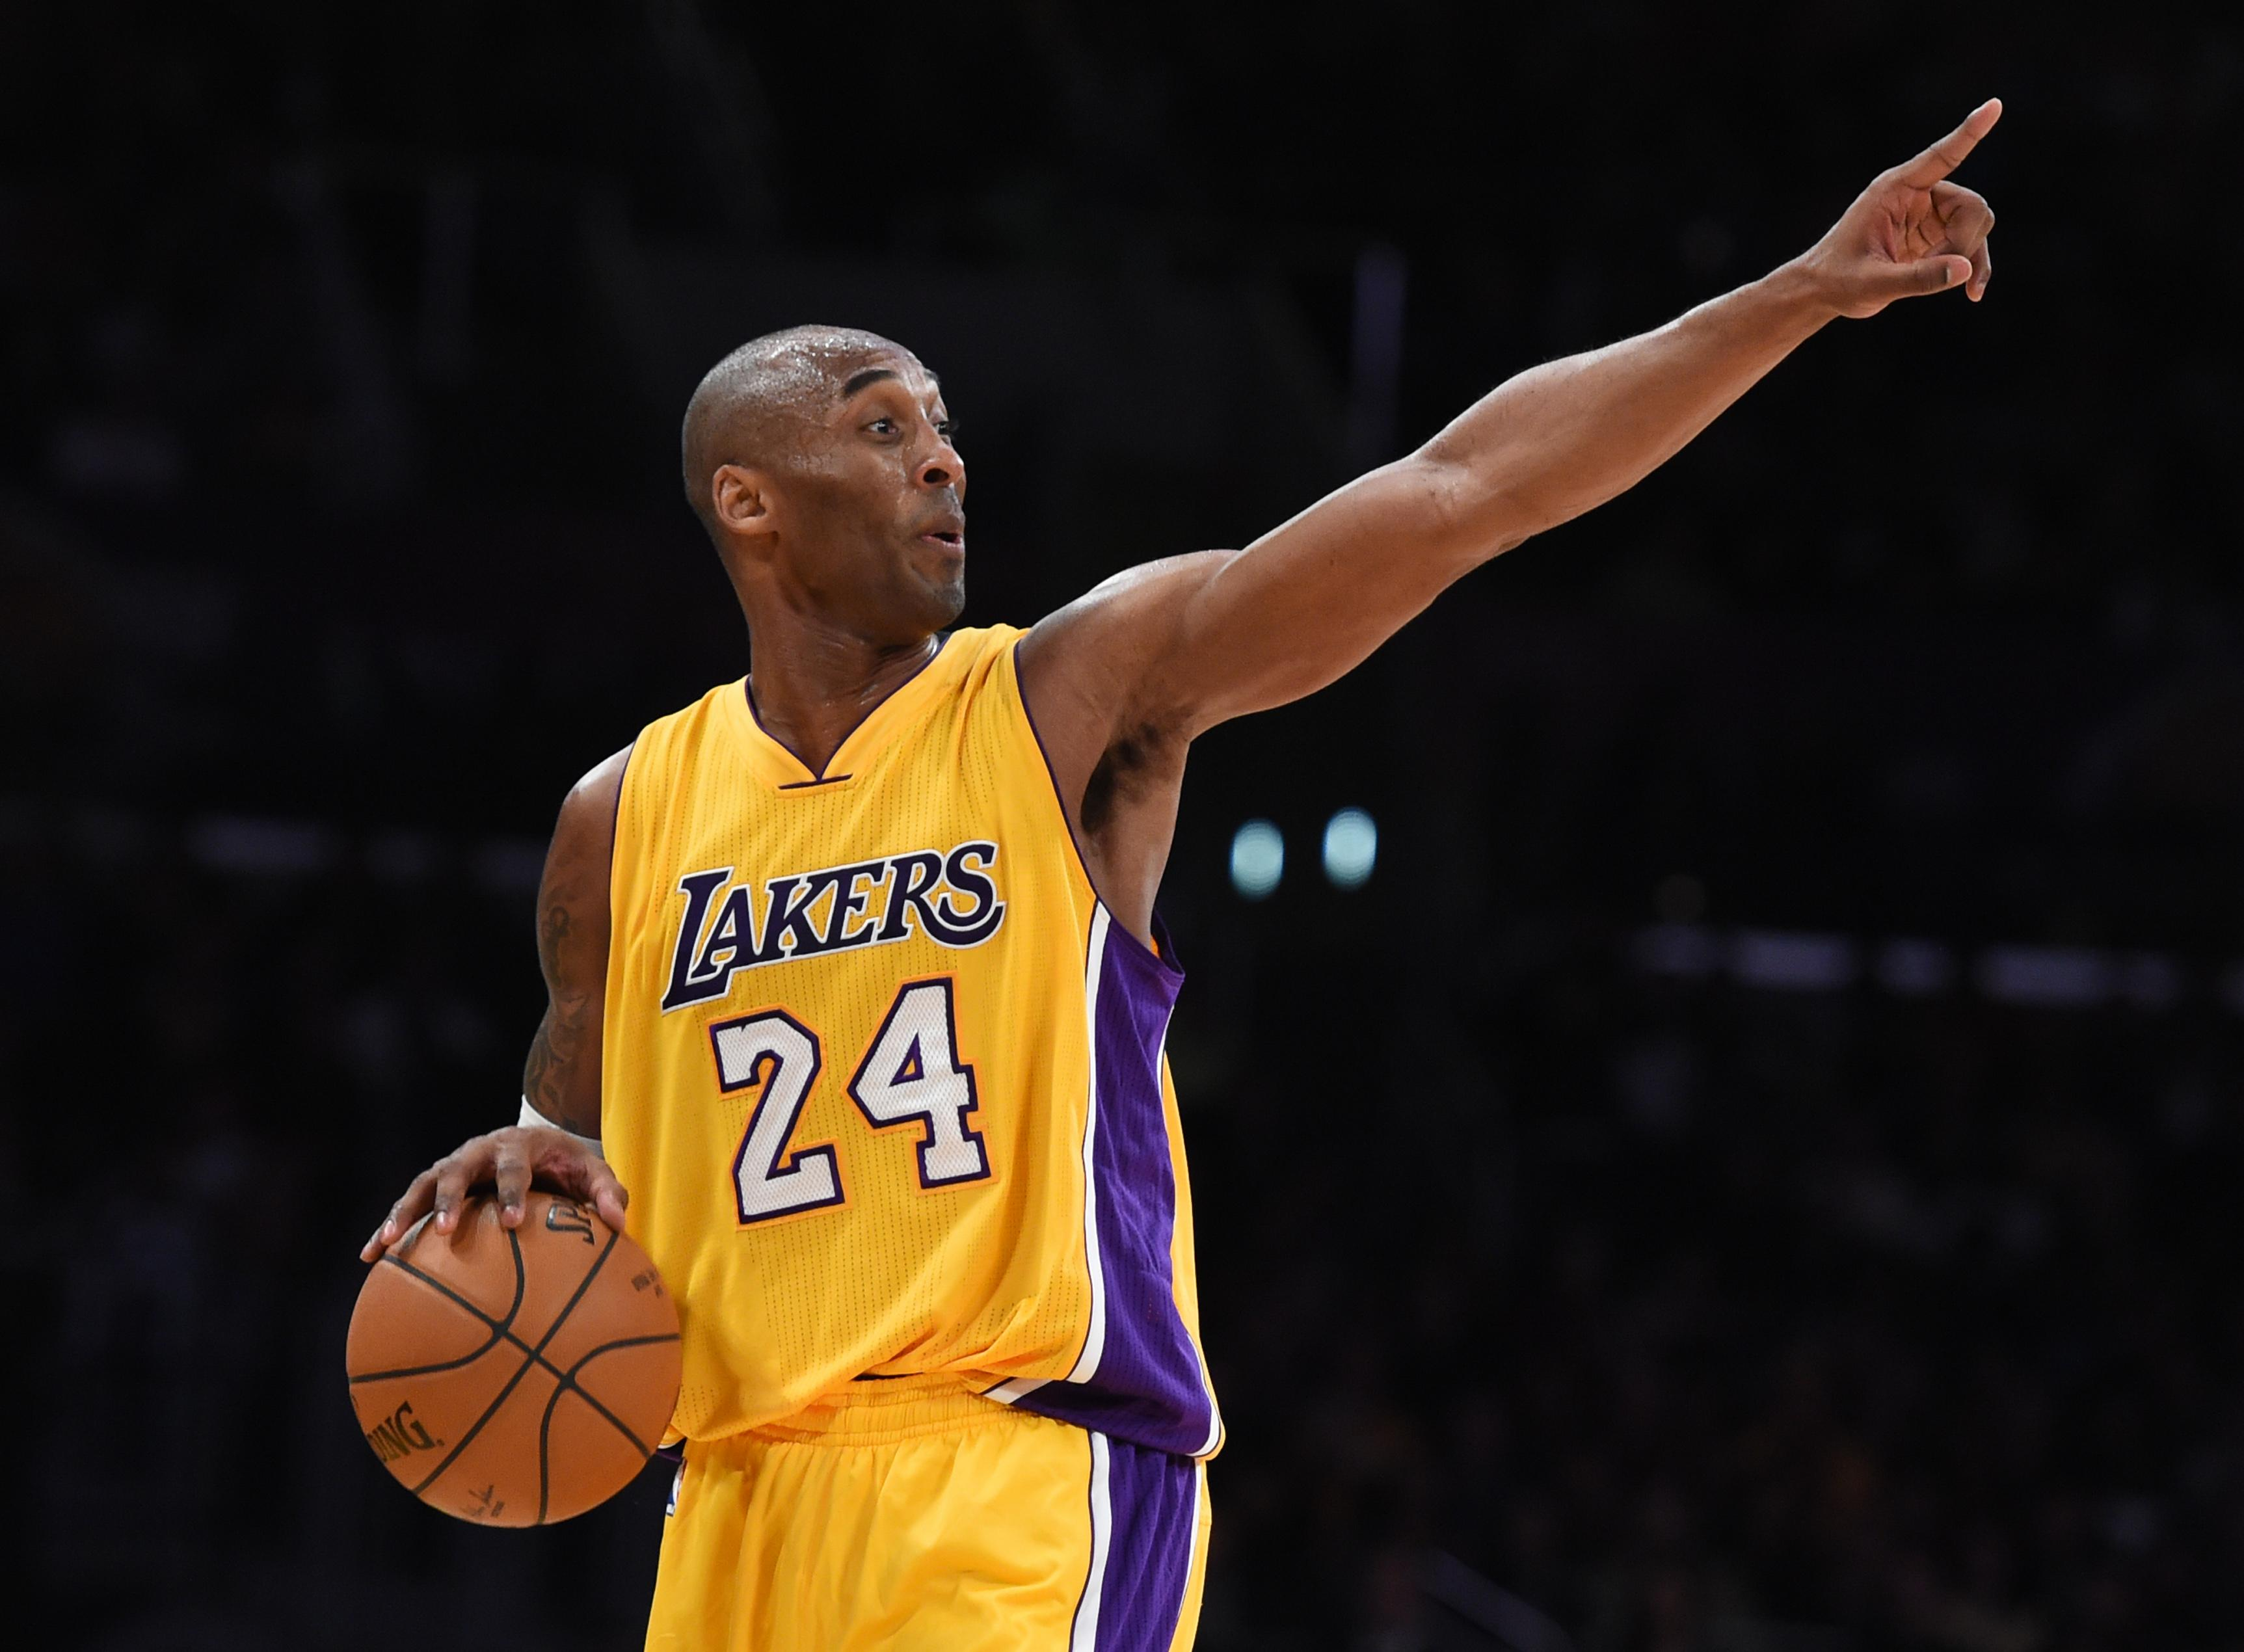 NBA's Bryant out for season after surgery